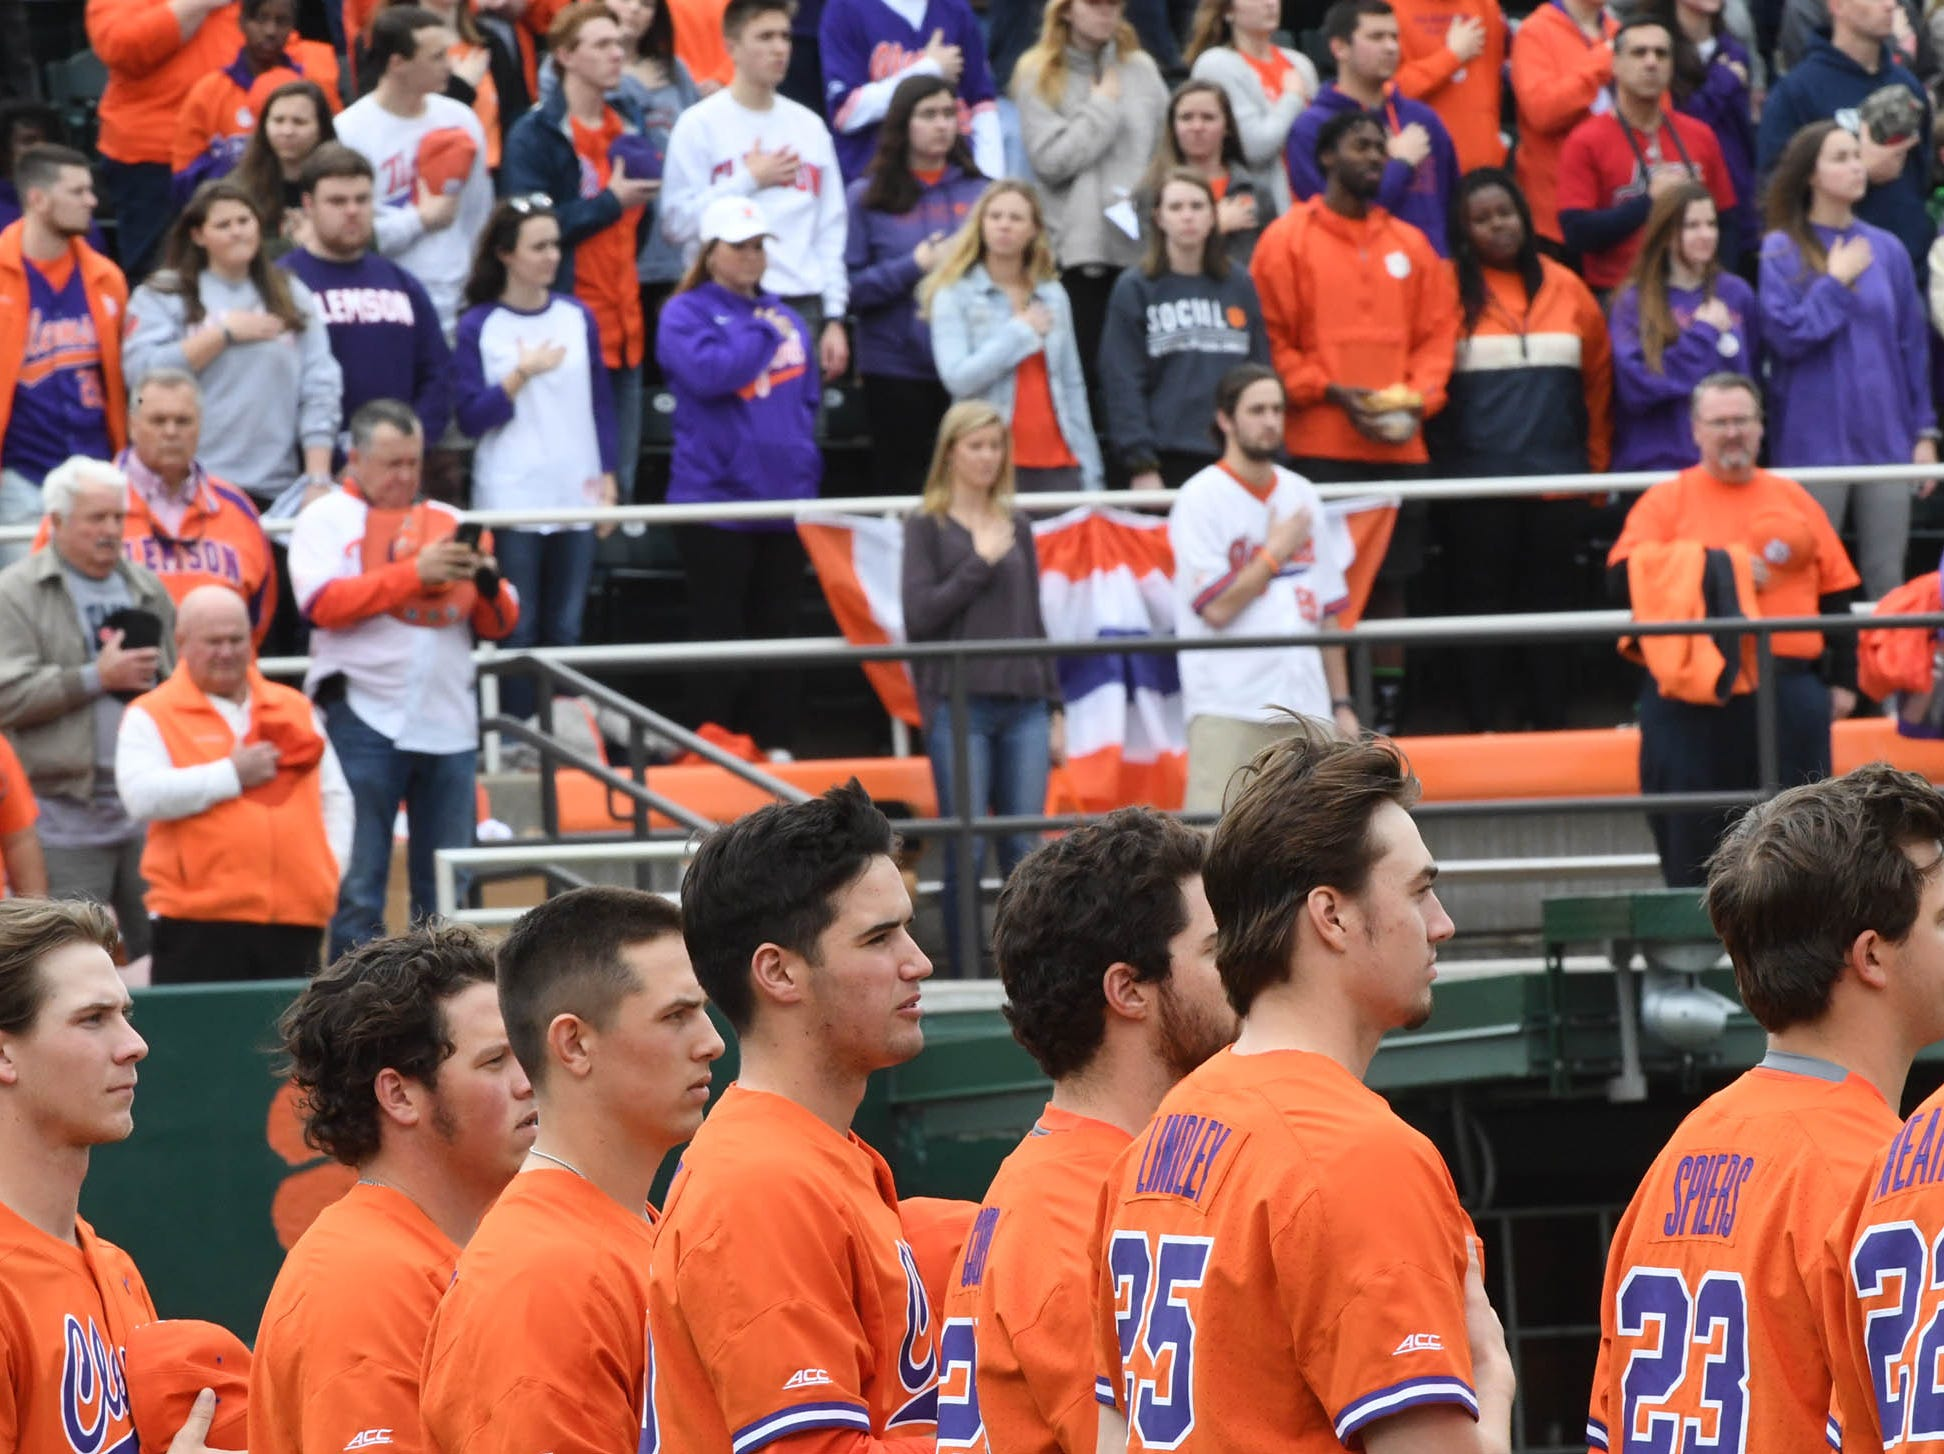 Clemson players and fans join in the National Anthem before the first inning at Doug Kingsmore Stadium in Clemson Friday, February 15, 2019.